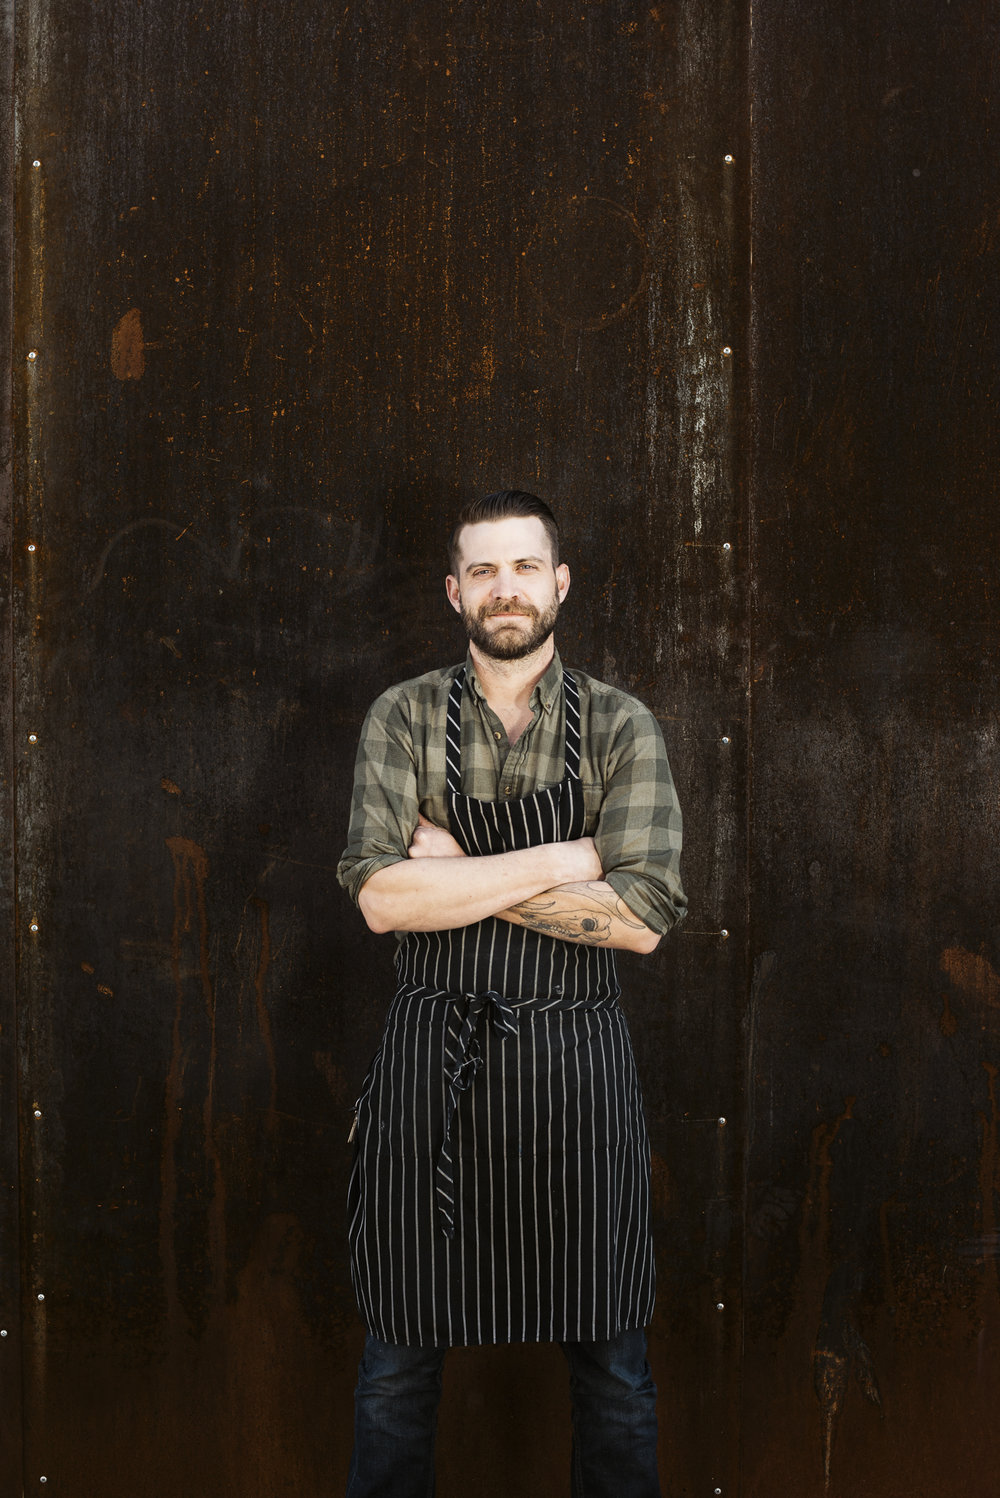 Chef Josiah Mcgaughey of Salt & Smoke